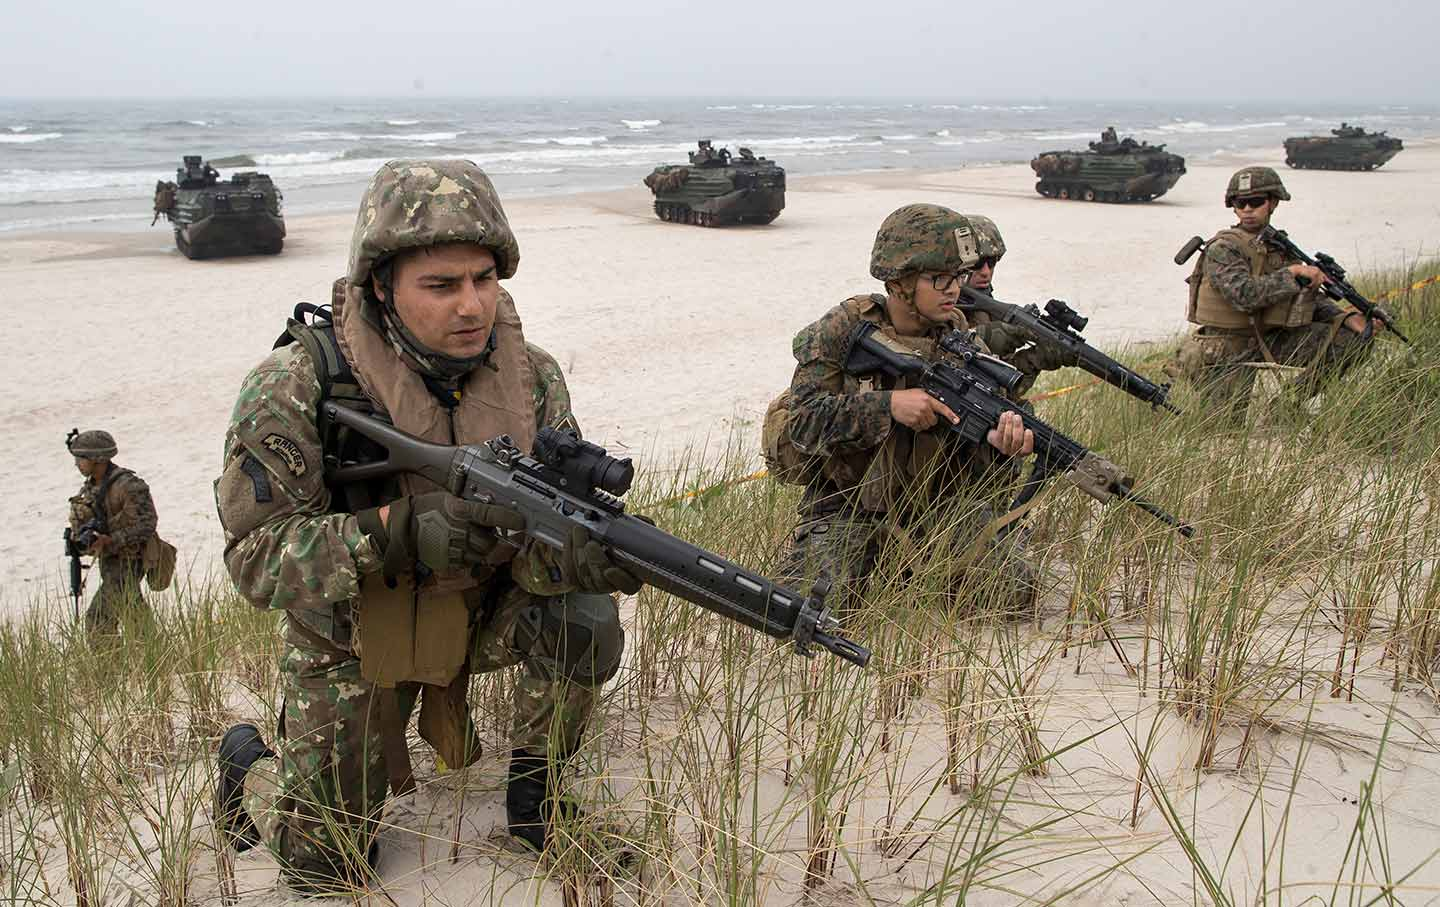 Marines at a NATO Exercise in Lithuania